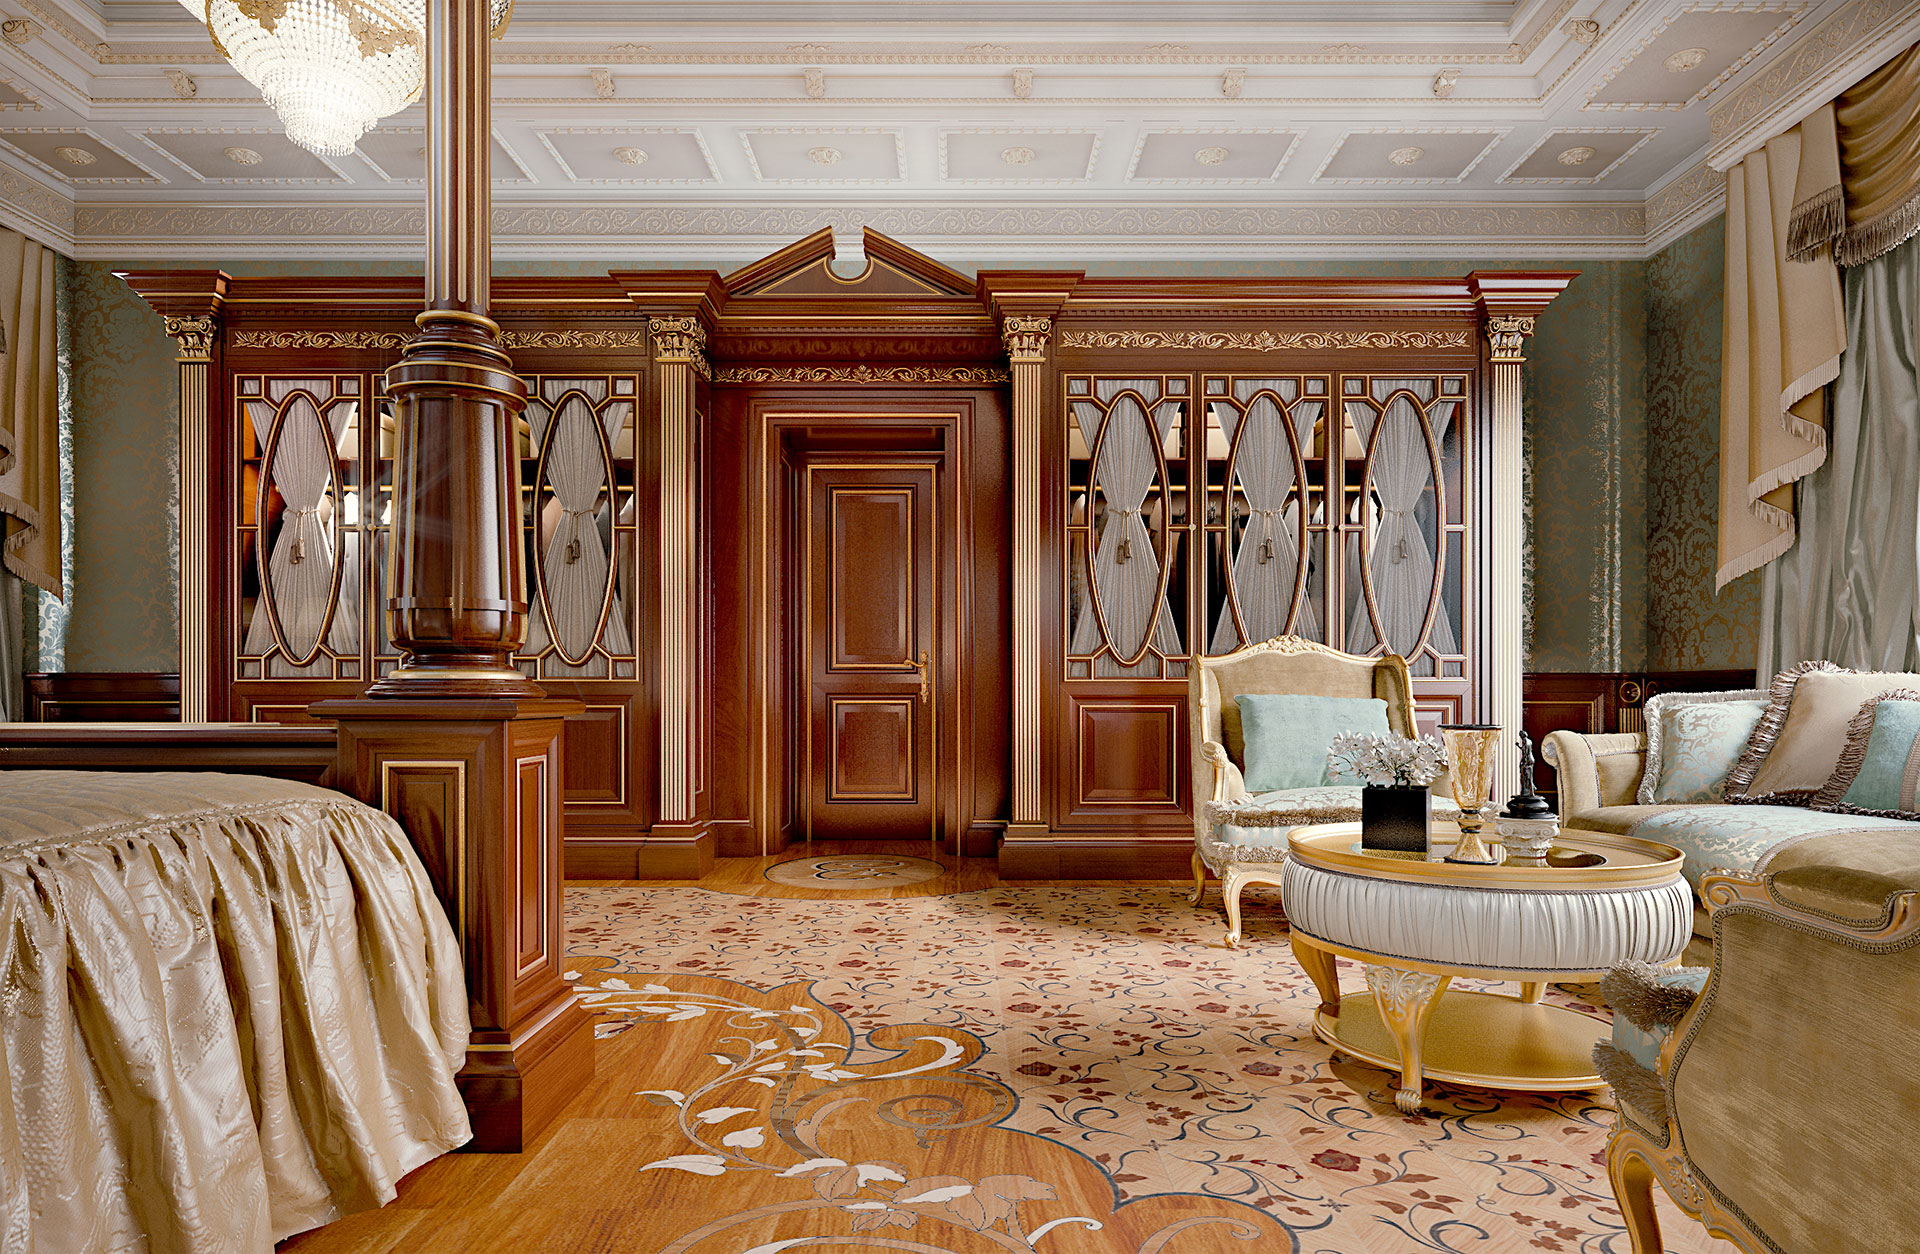 Faoma bespoke wardrobes in classic bedroom